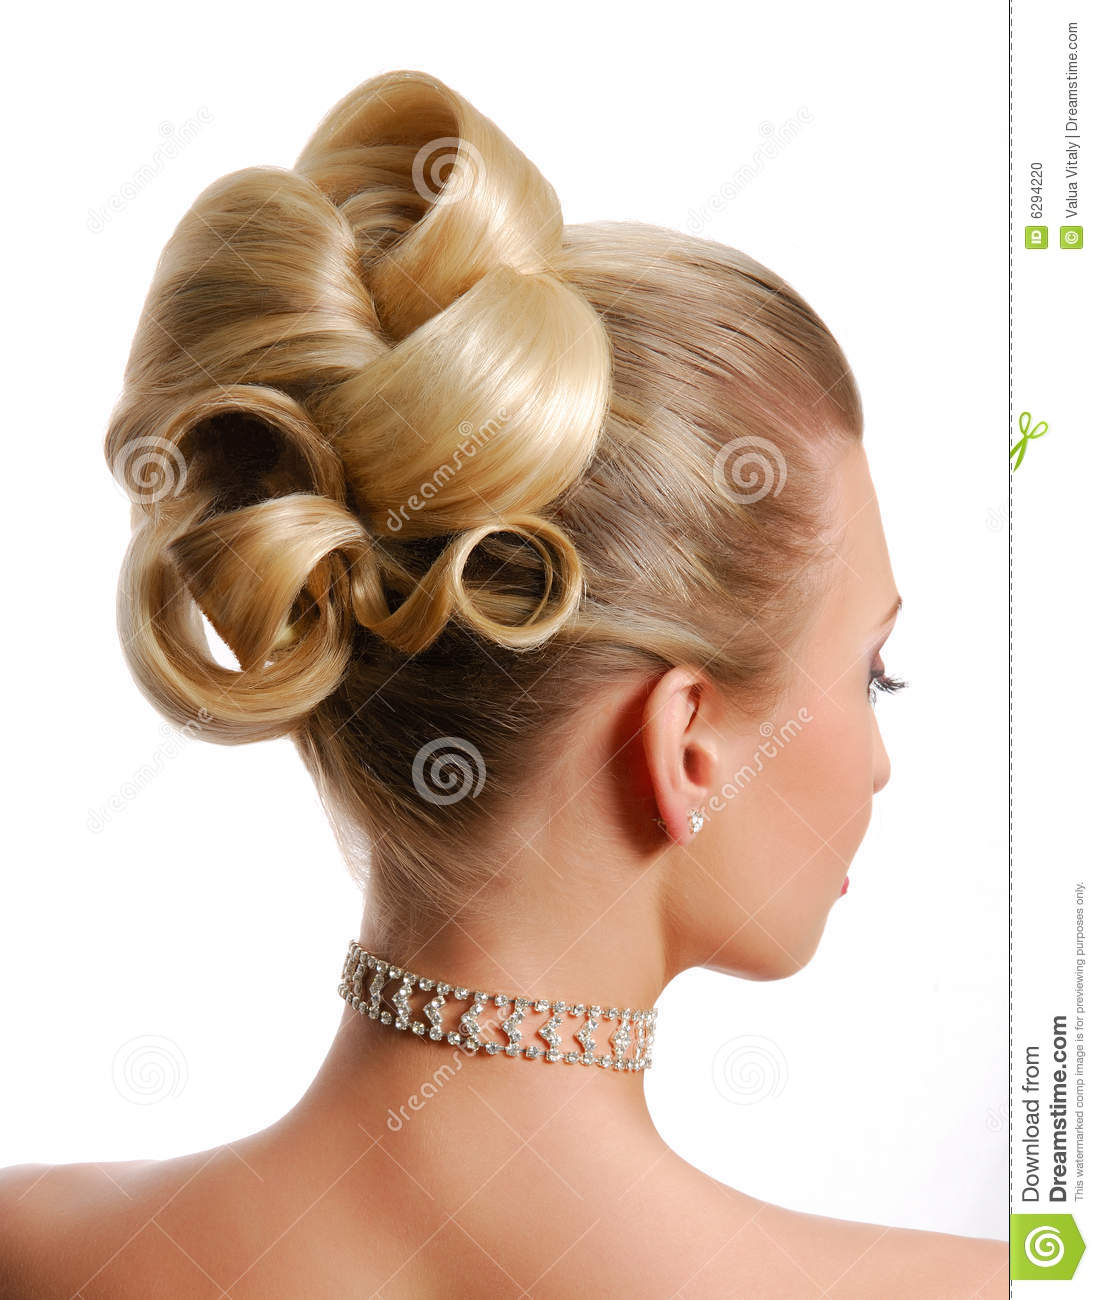 Modern Wedding Hairstyles For The Cool Contemporary Bride: Modern Wedding Hairstyle Stock Photo. Image Of Beautiful